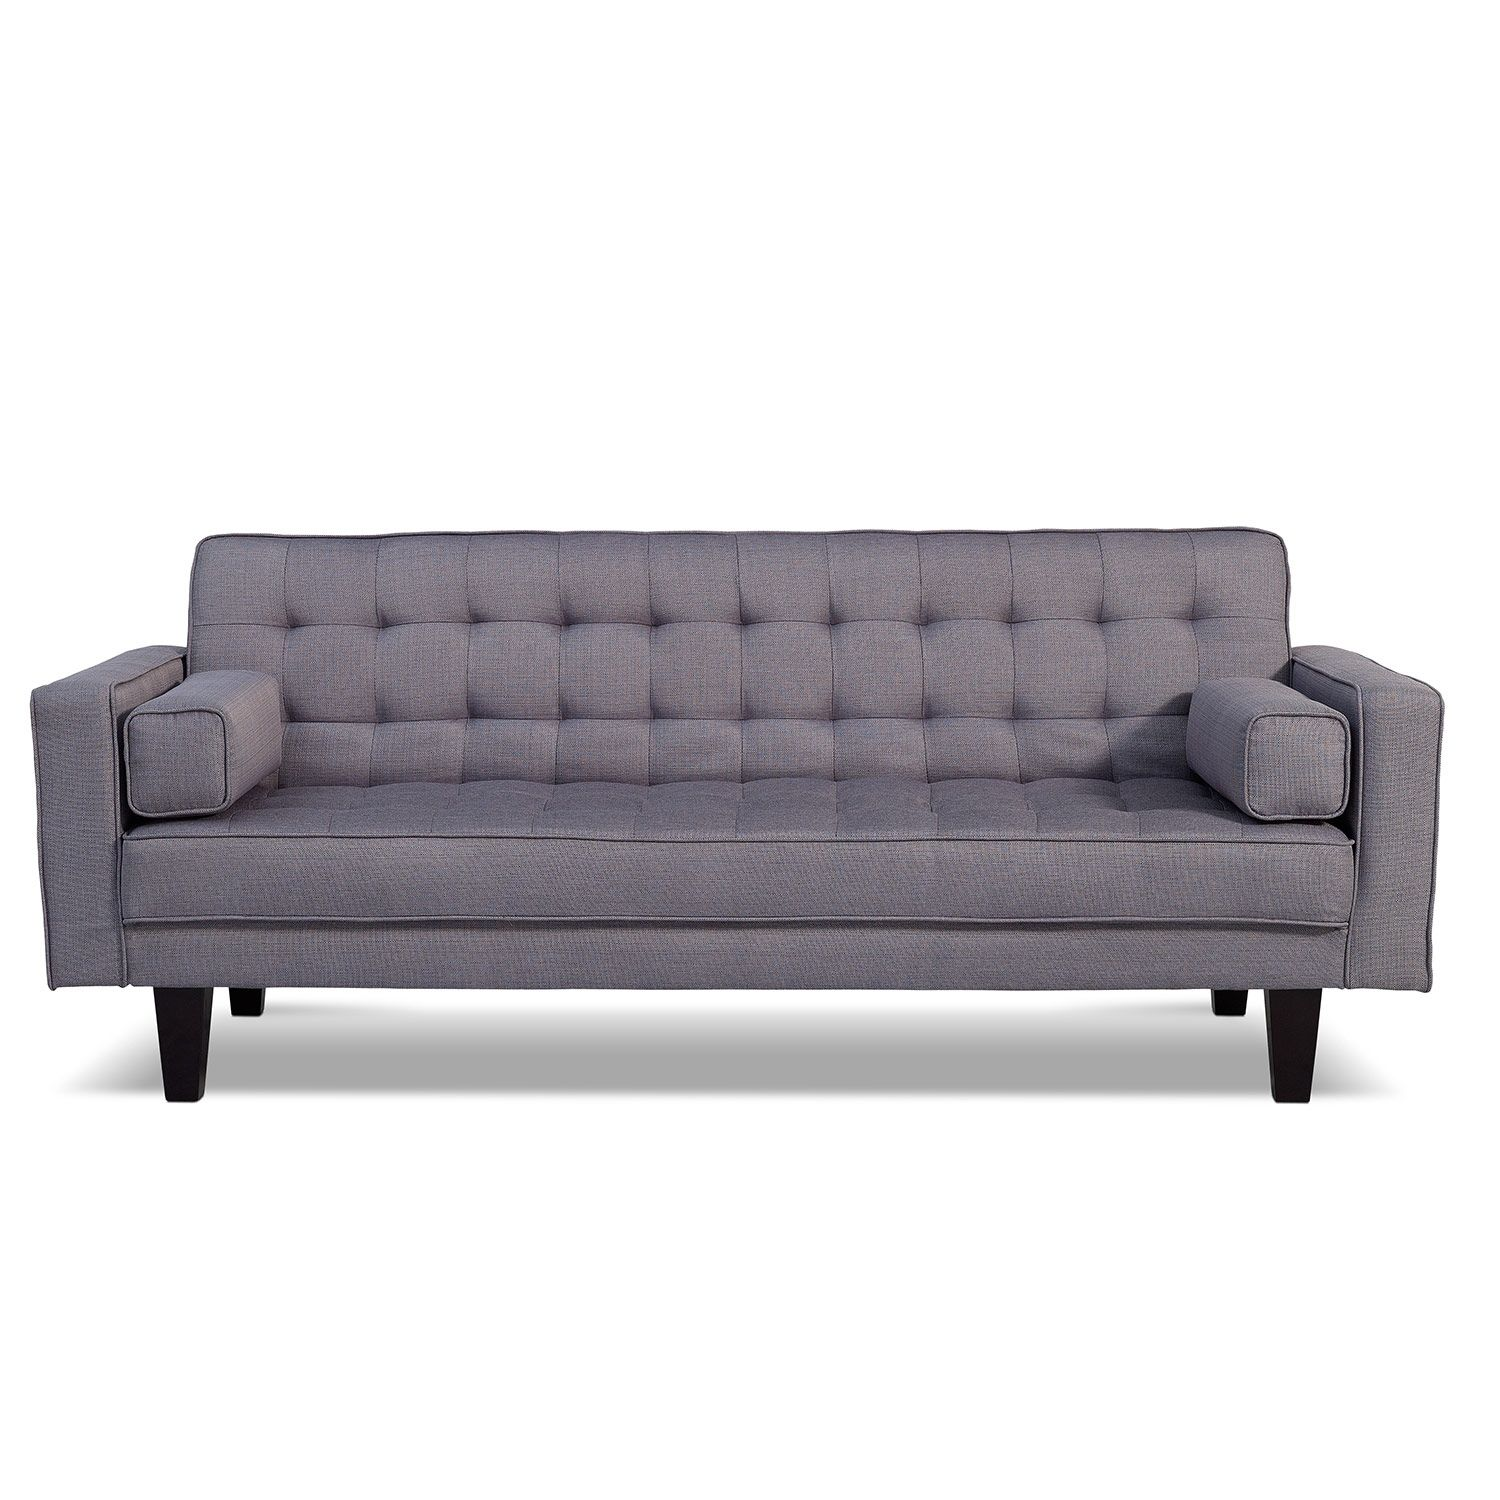 value city furniture sofa bed big greige does have it in gray bianca futon